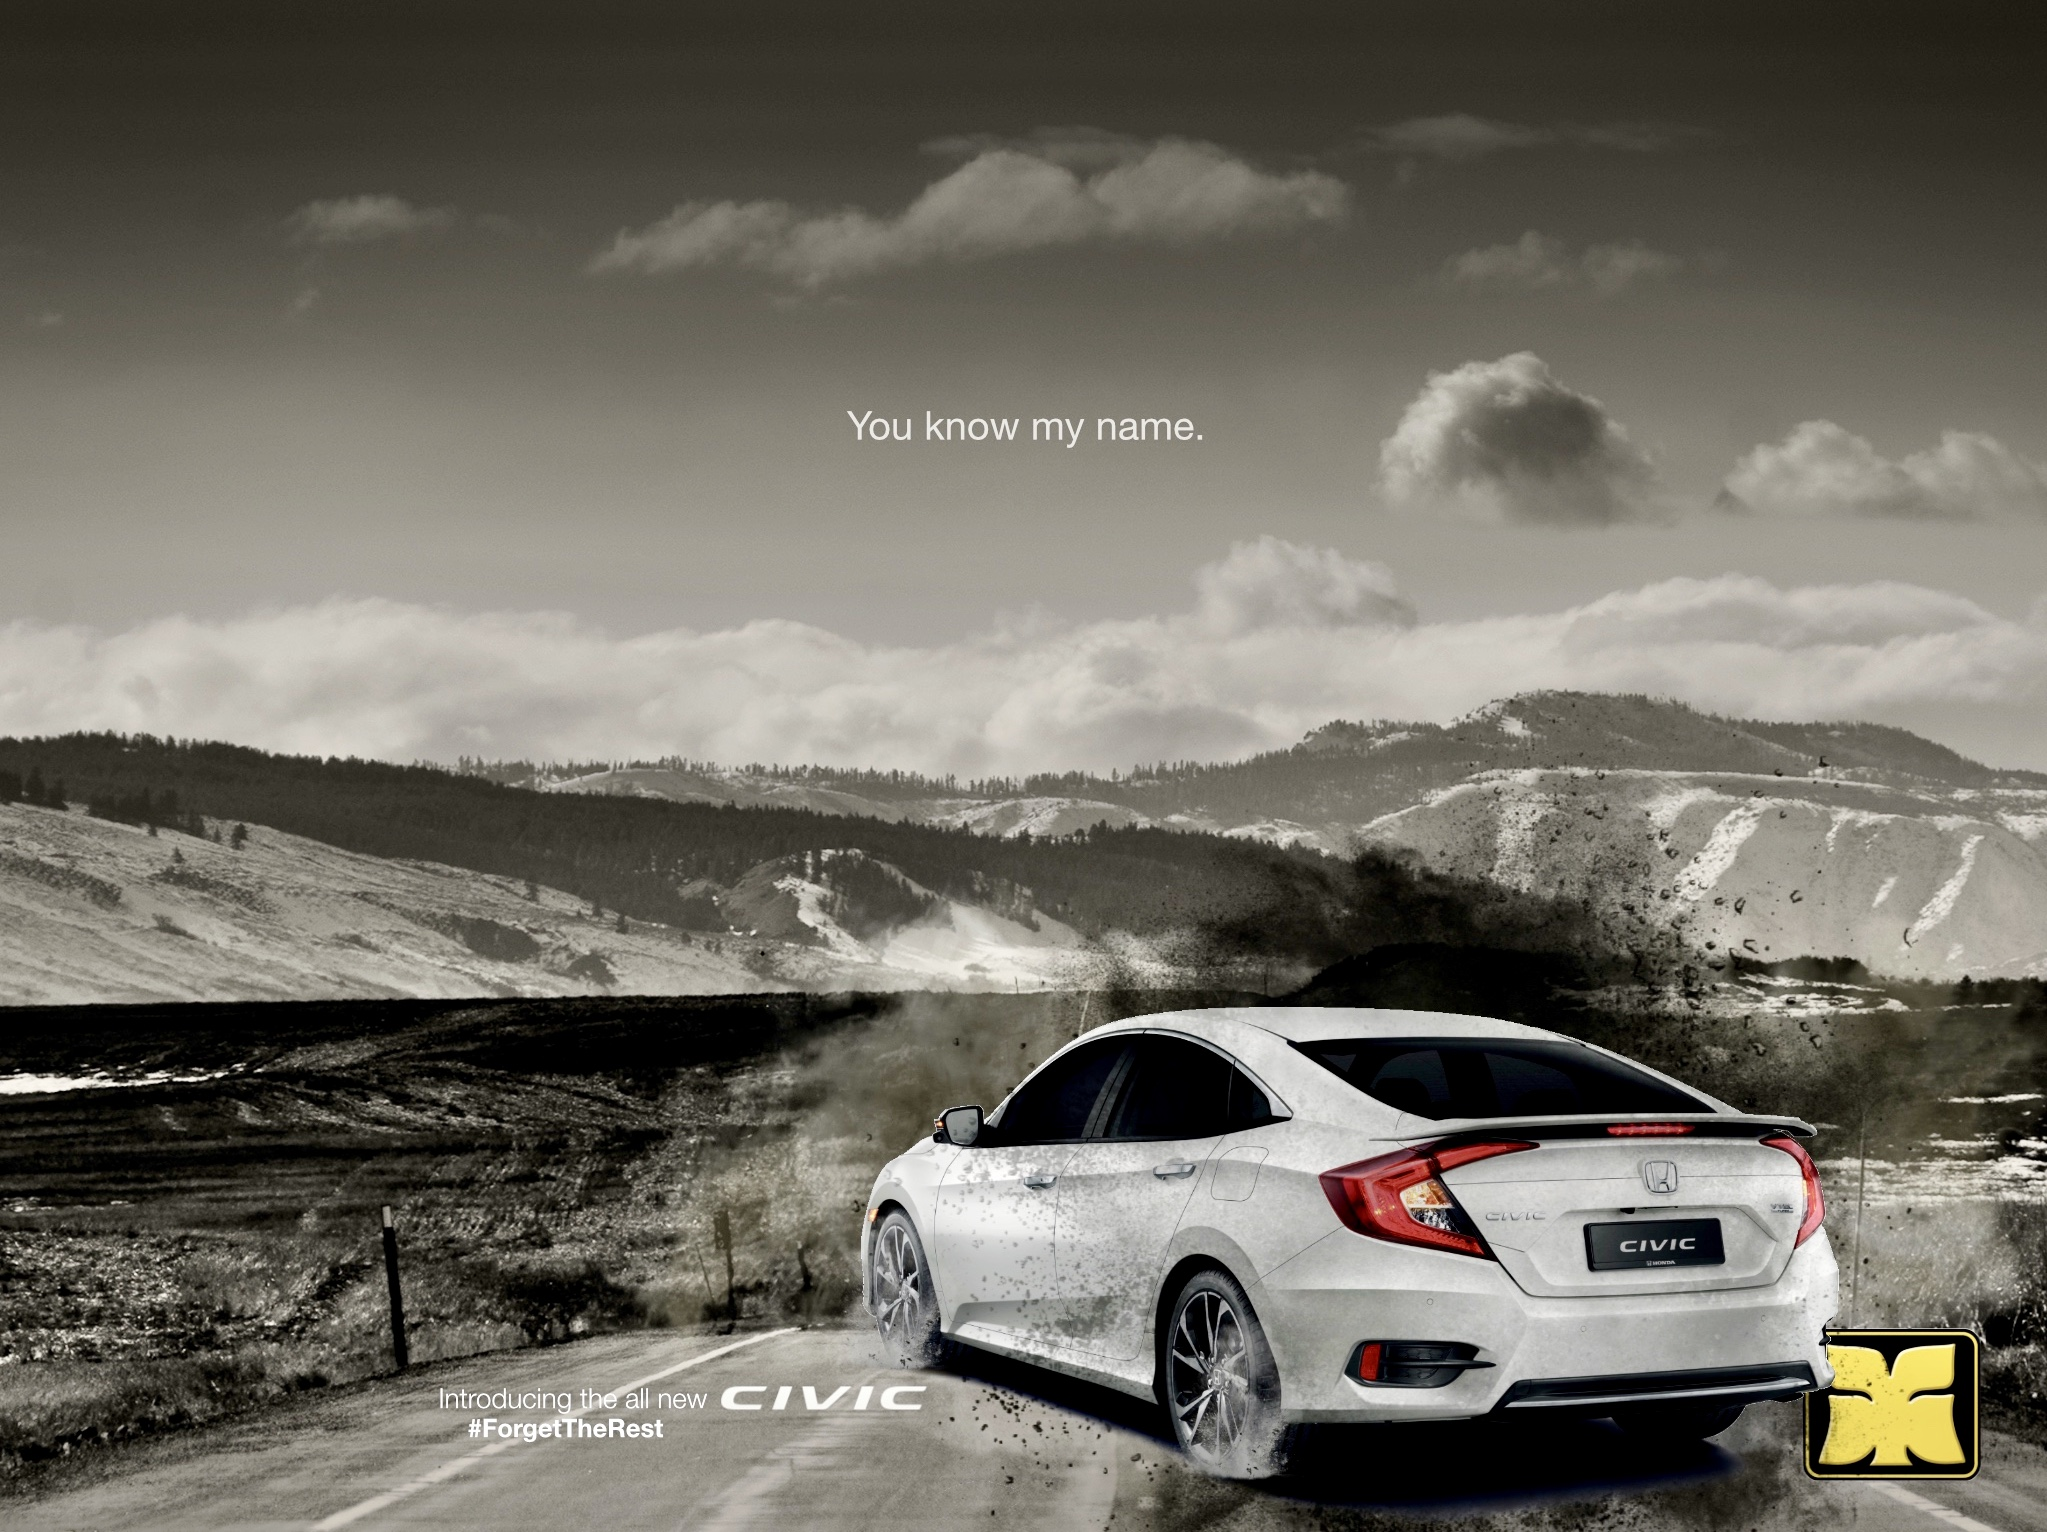 """New Civic Assault Yong Ming Motor """"You Know My Name"""""""